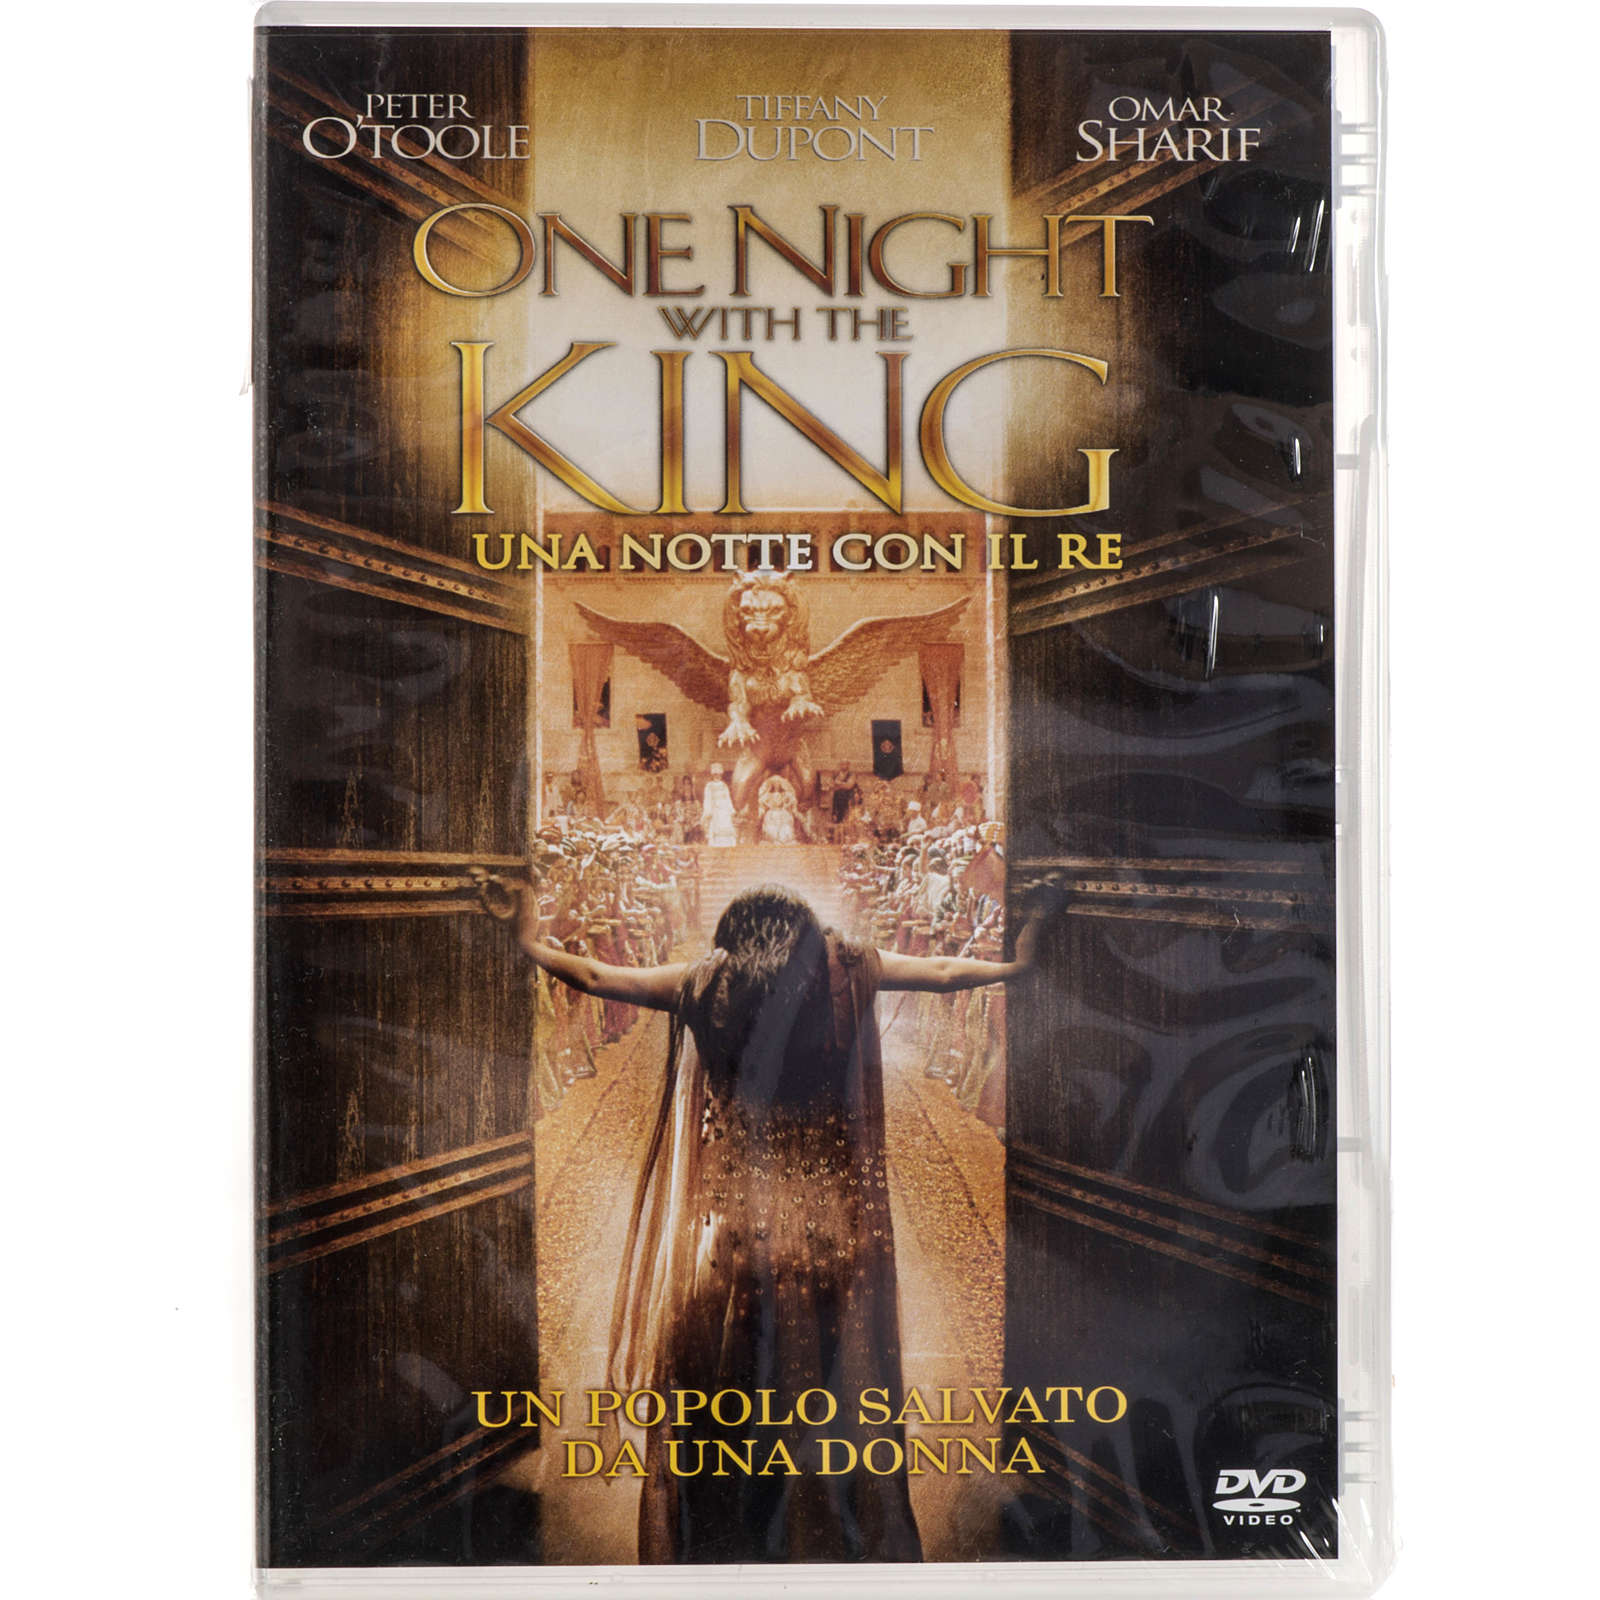 One night with the King (una notte con il re) 3